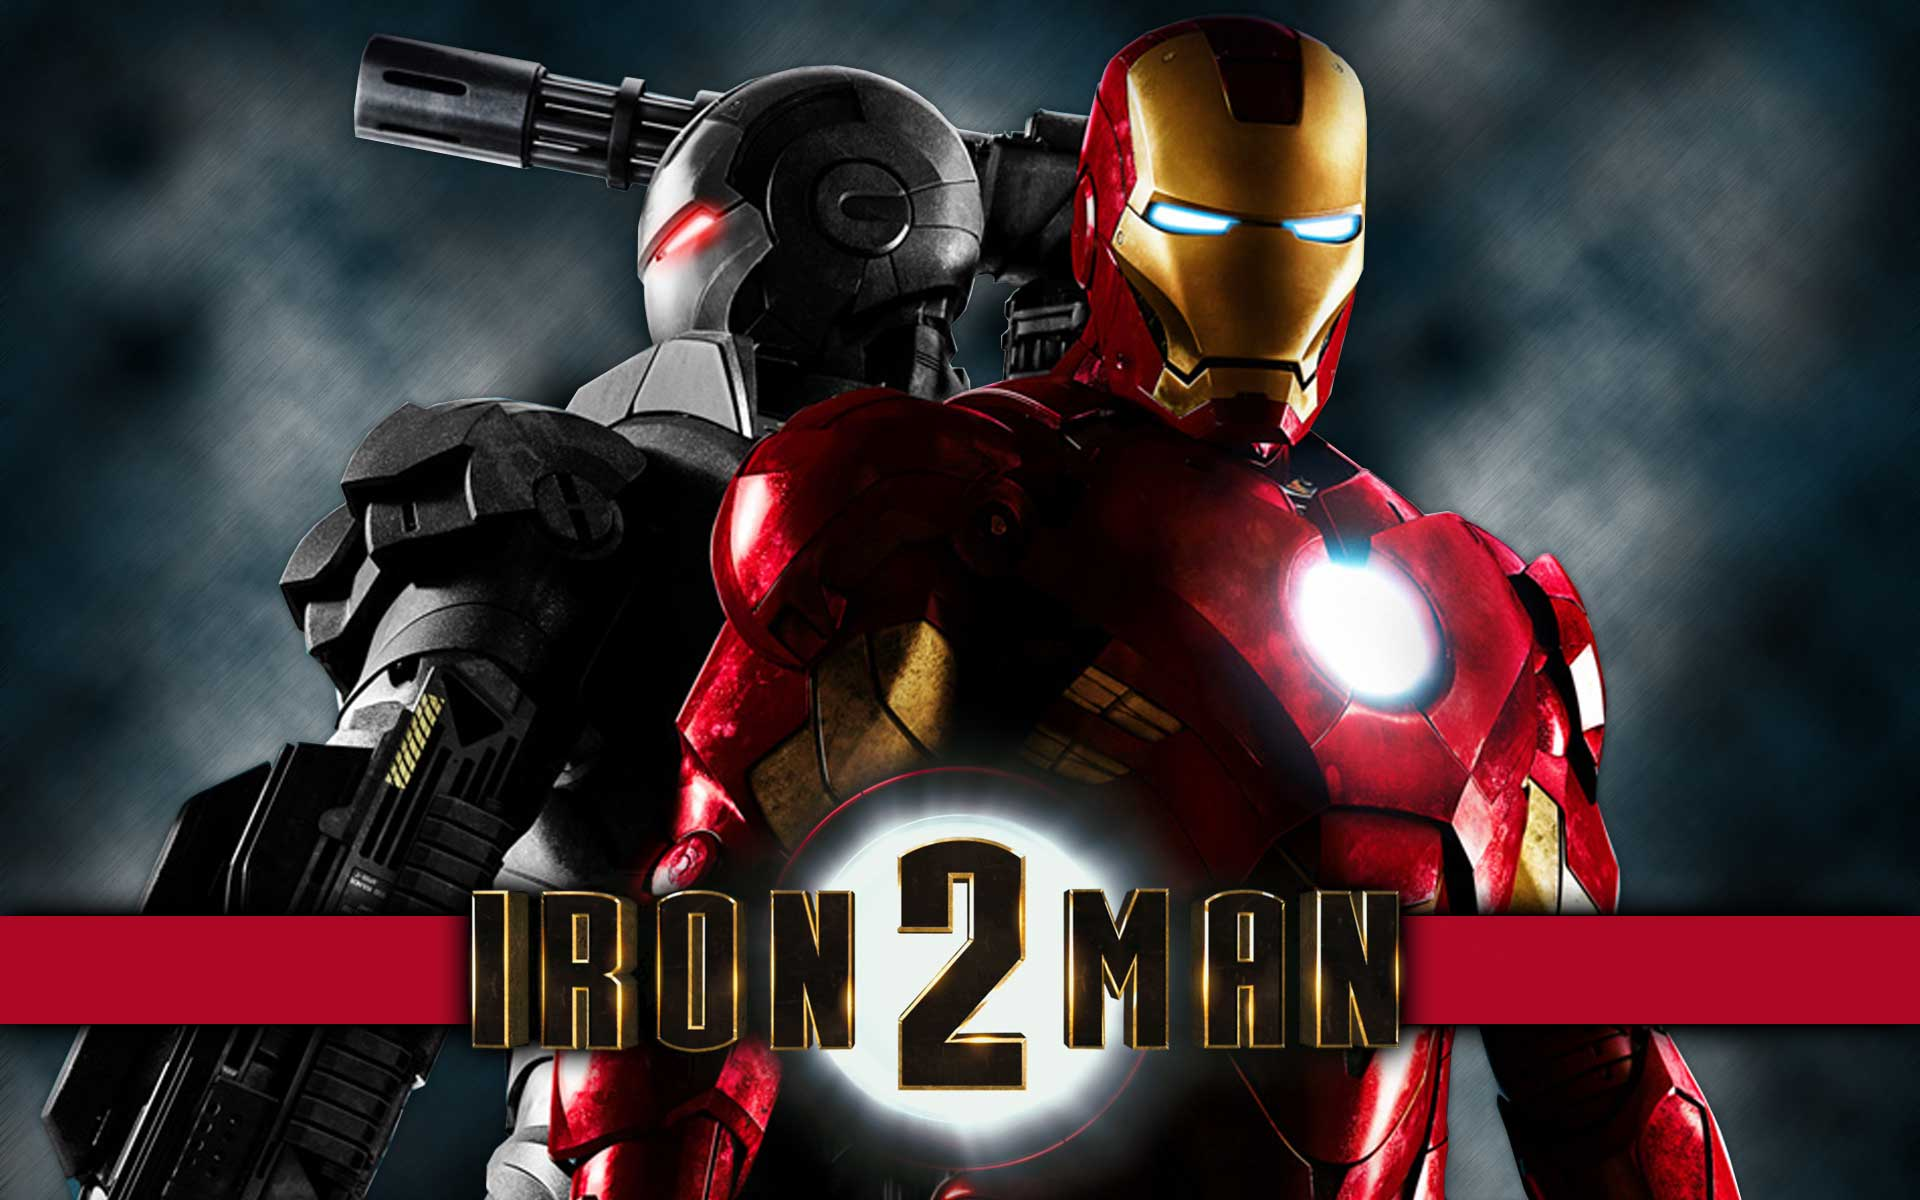 Iron Man 2 all main hero wallpapers and images